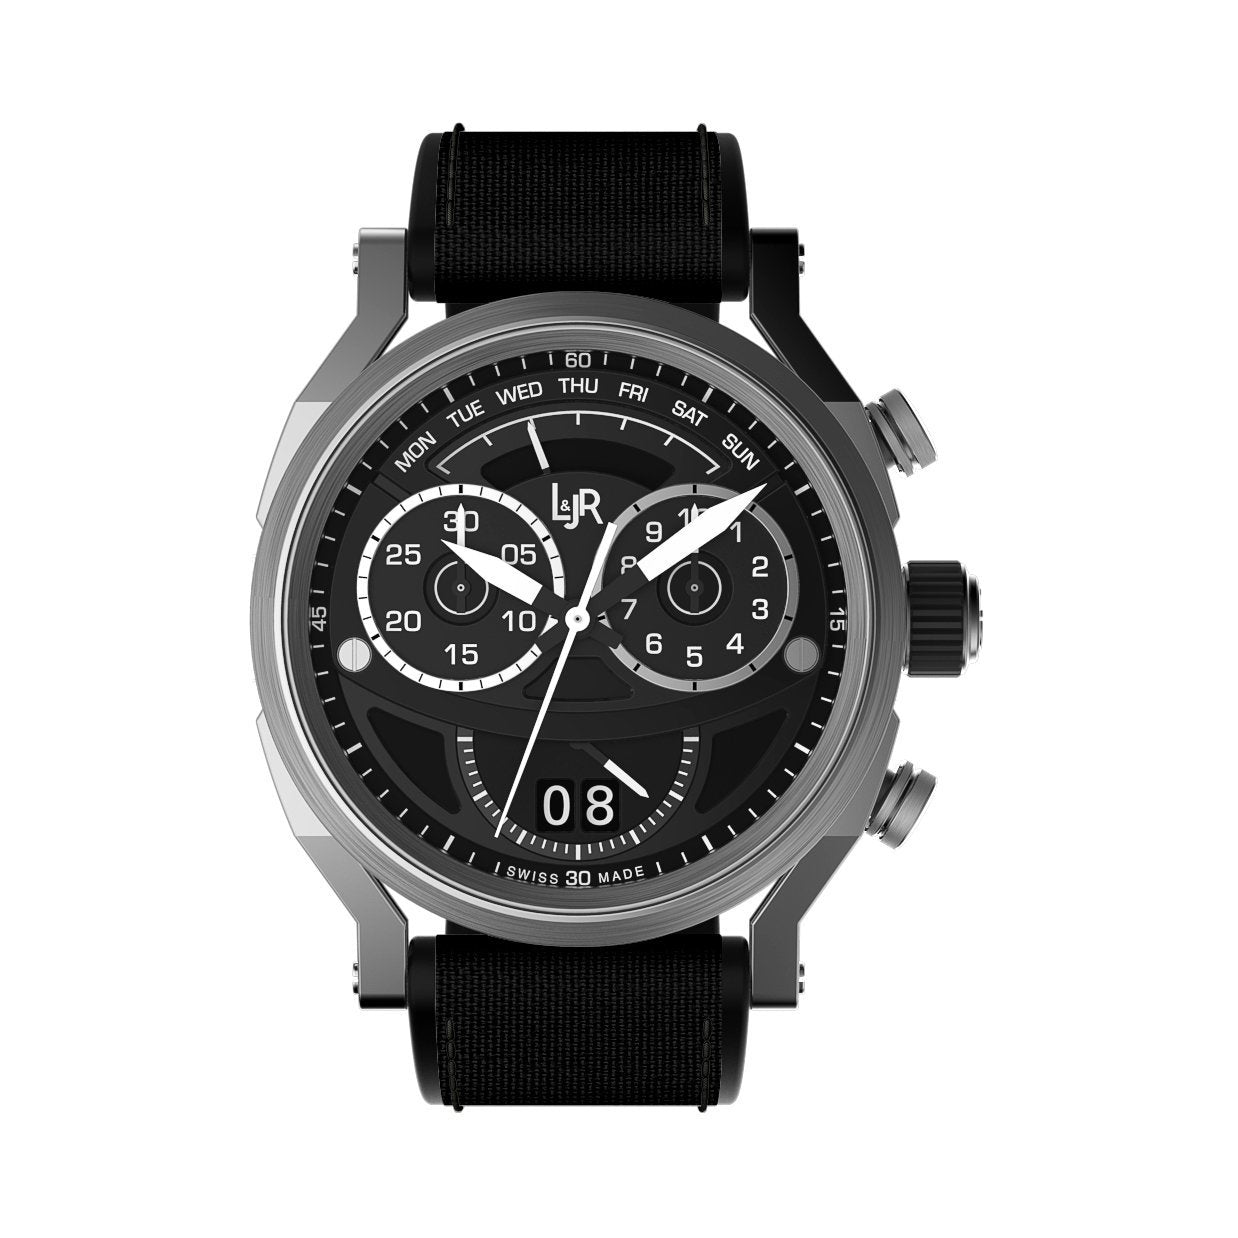 L&Jr Chronograph Day and Date Black Nylon